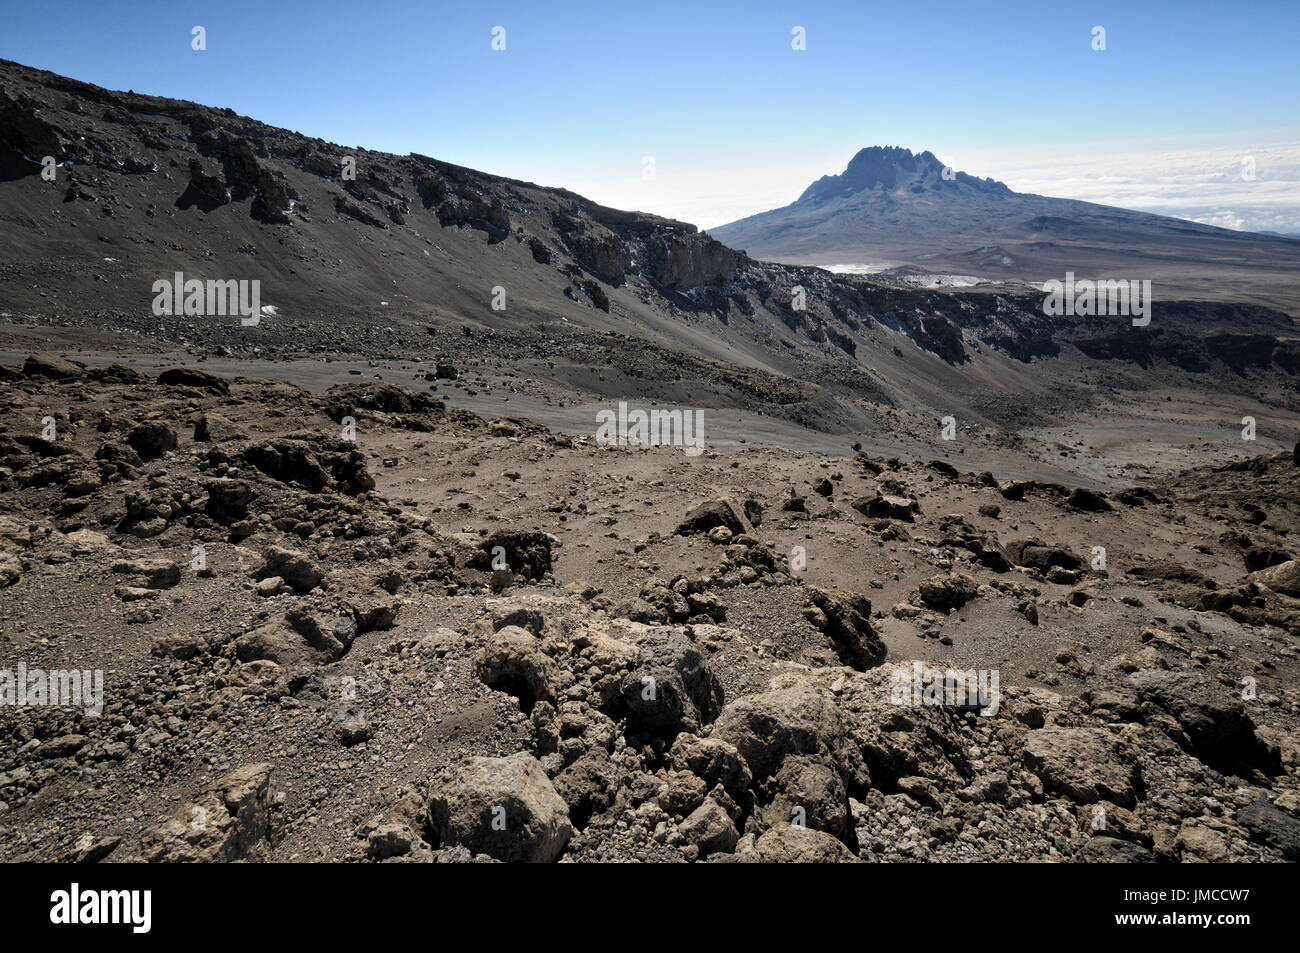 View of Mount Mawenzi during the descent from the summit, Kilimanjaro National Park, Tanzania Stock Photo